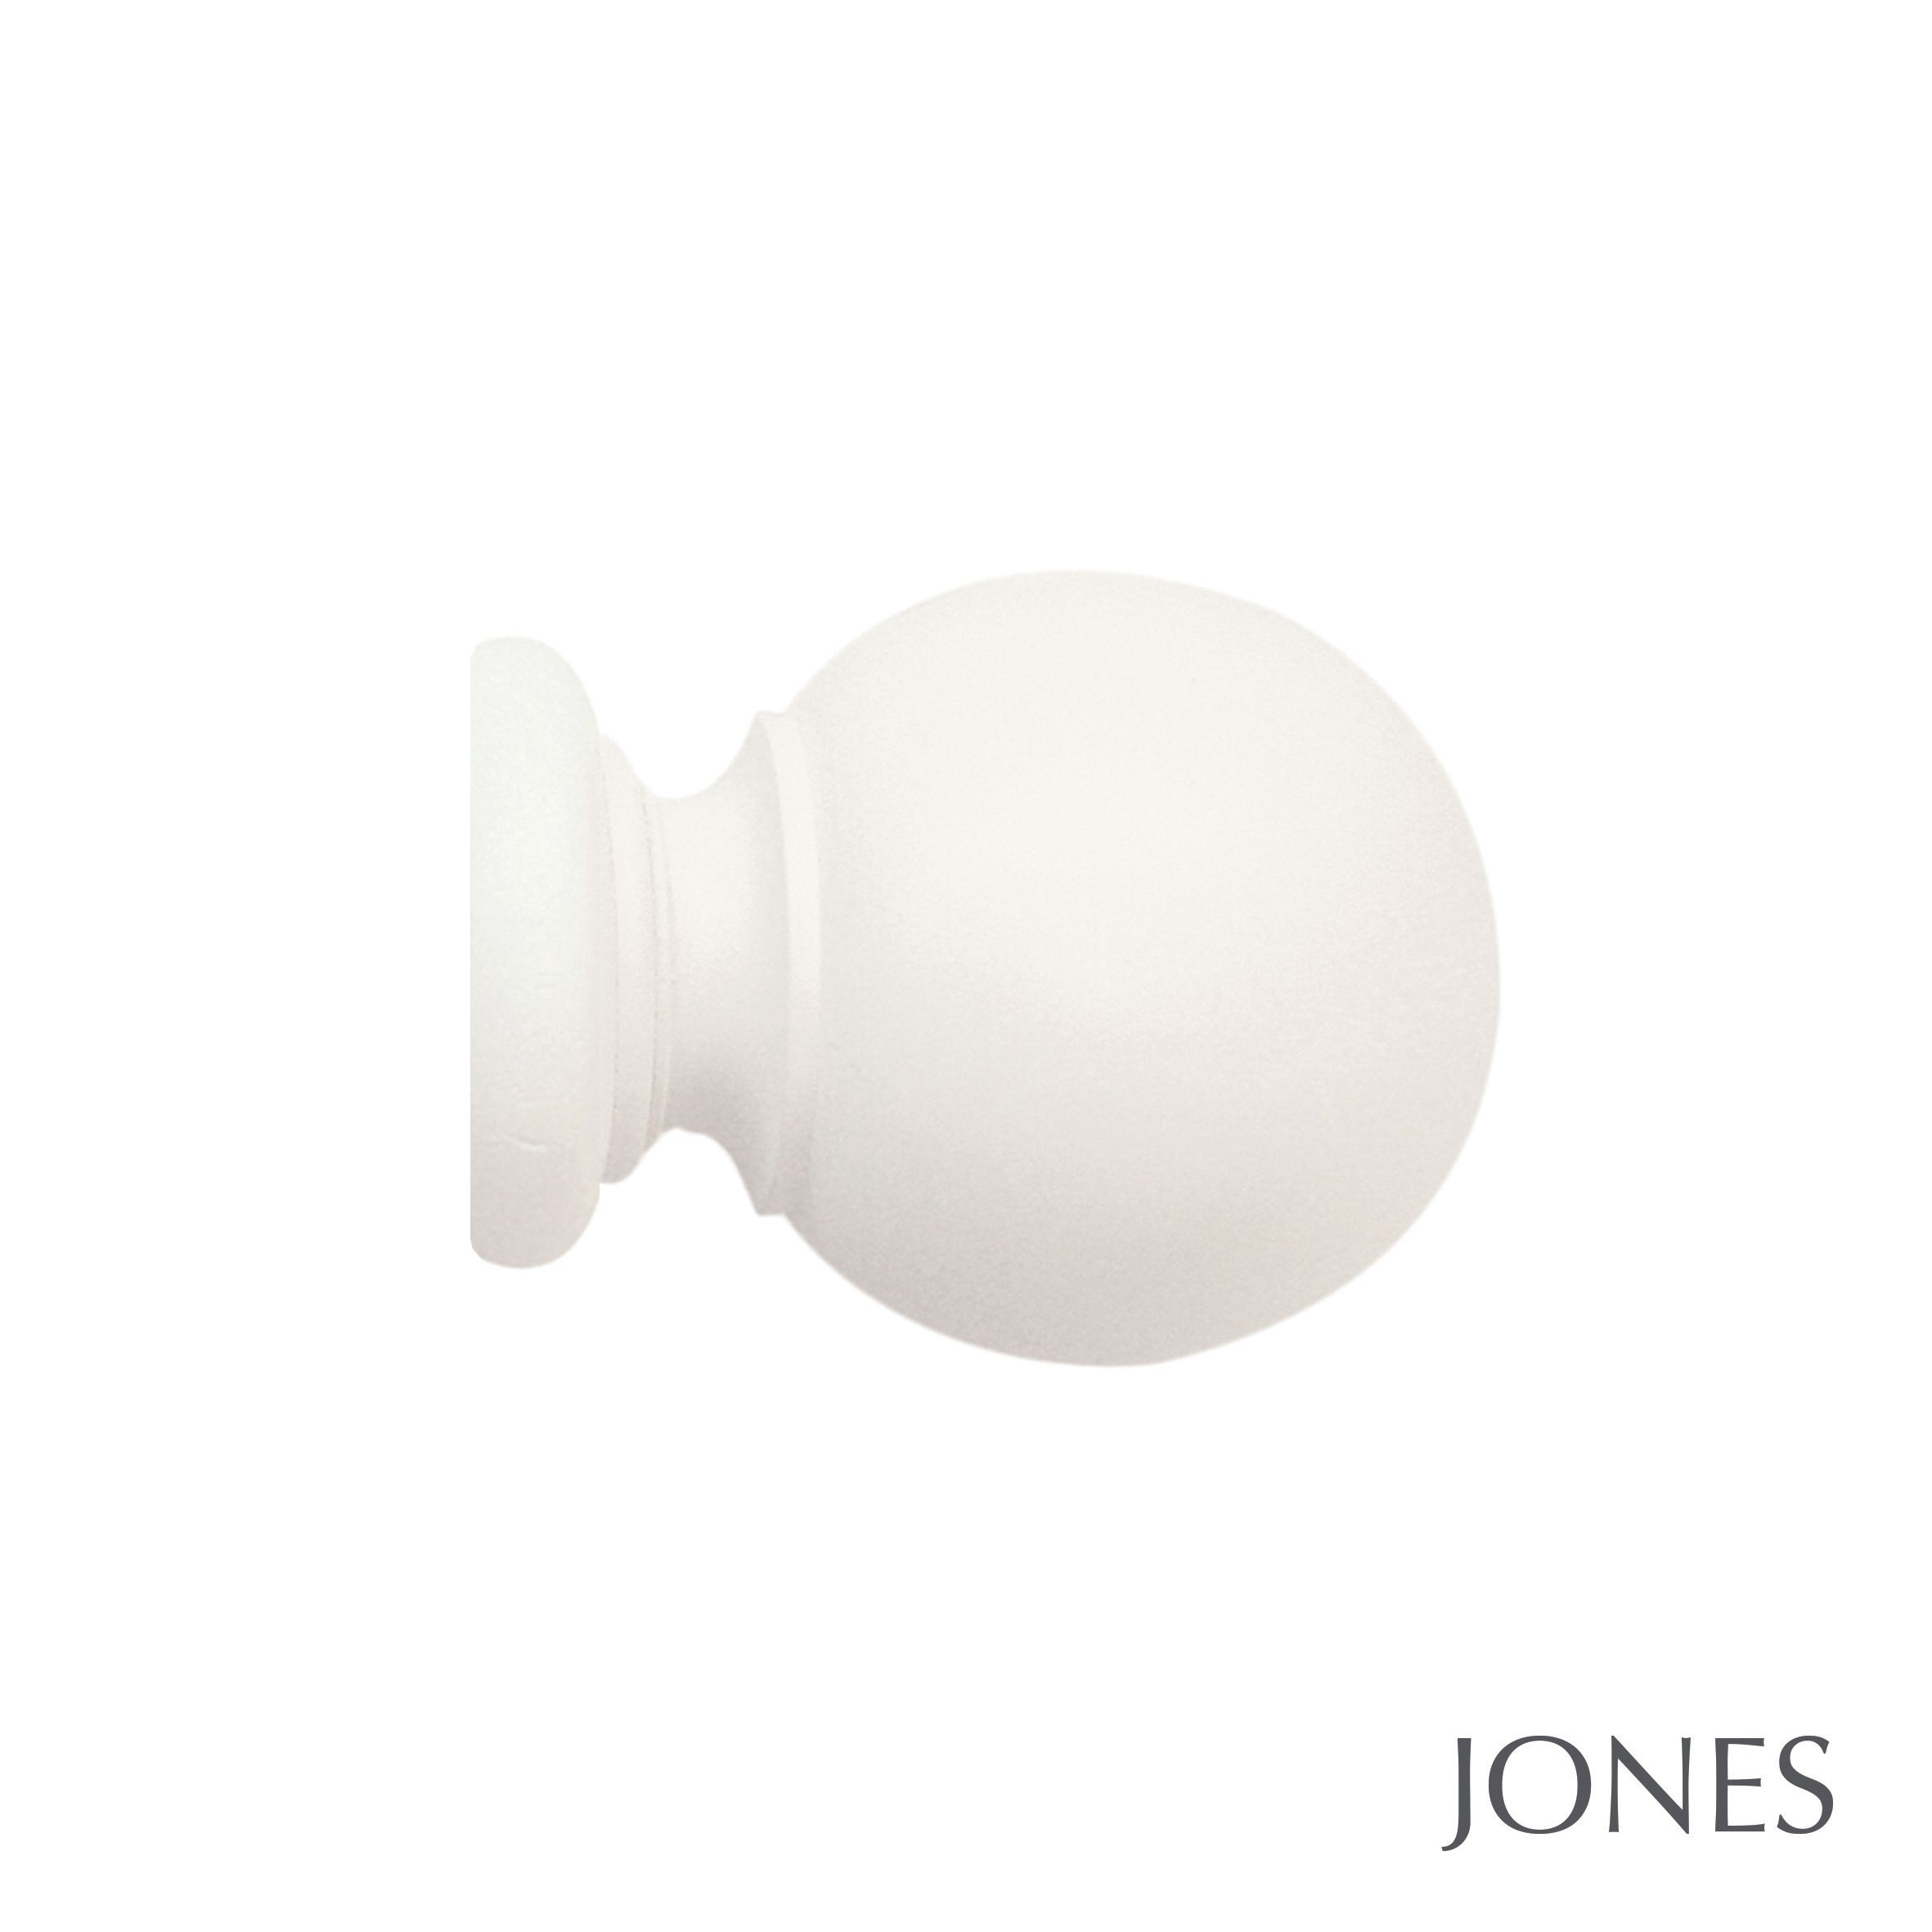 30mm Jones Cathedral Ball Finial Cotton